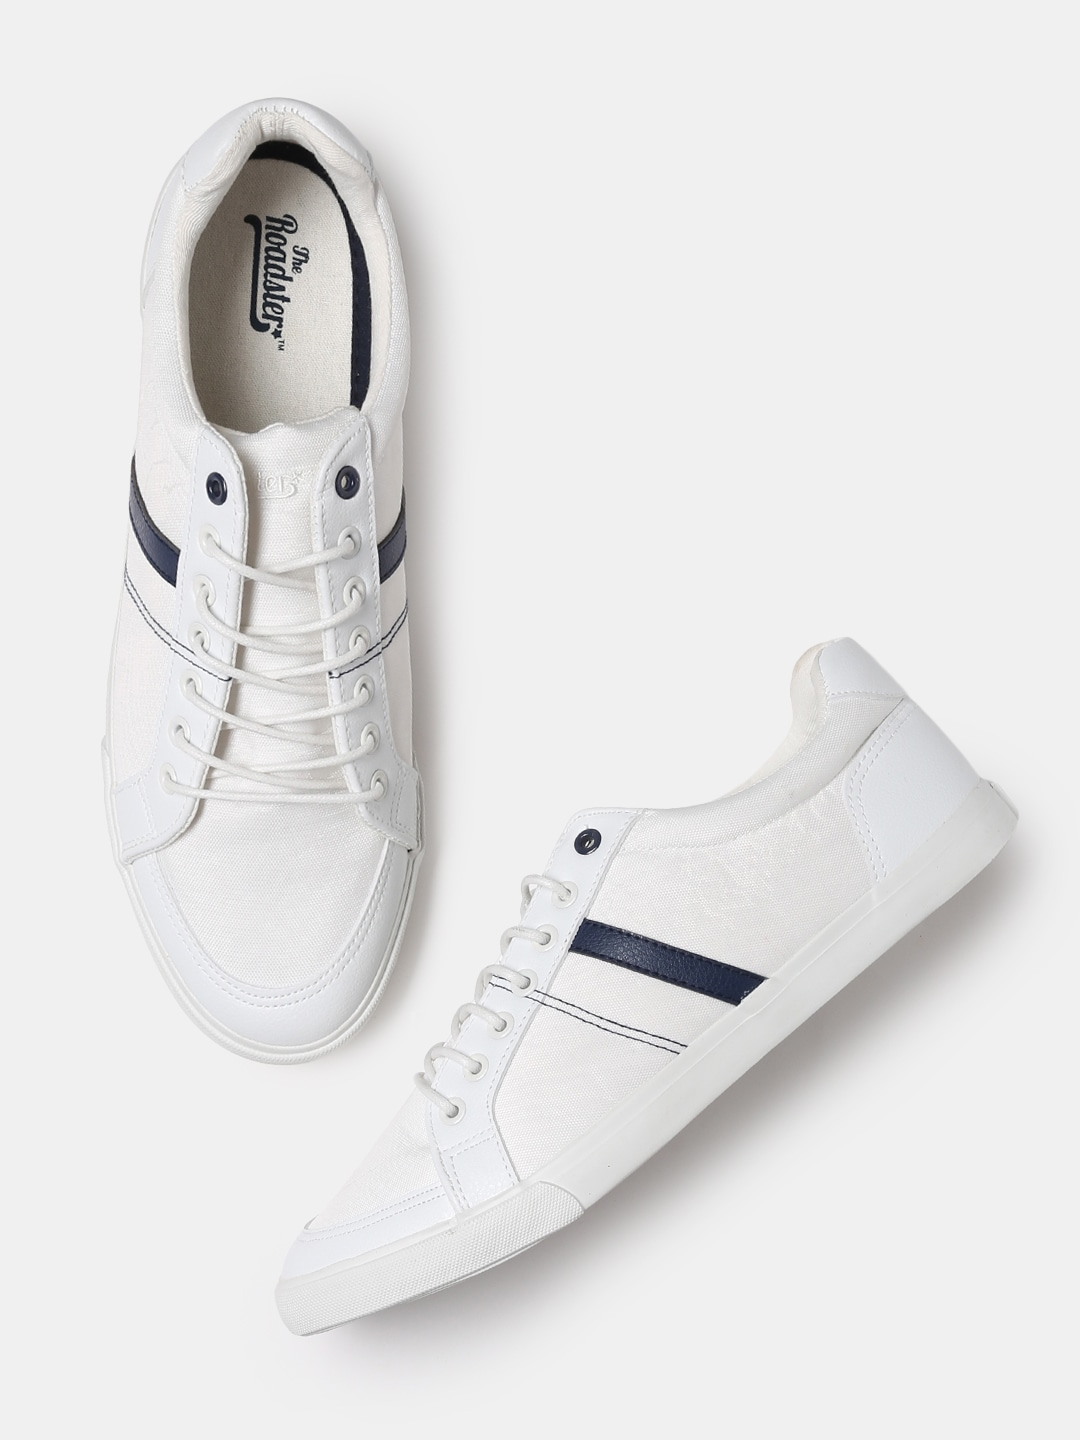 6fdfbd3ad Flat 50 Sale Casual Shoes - Buy Flat 50 Sale Casual Shoes online in India